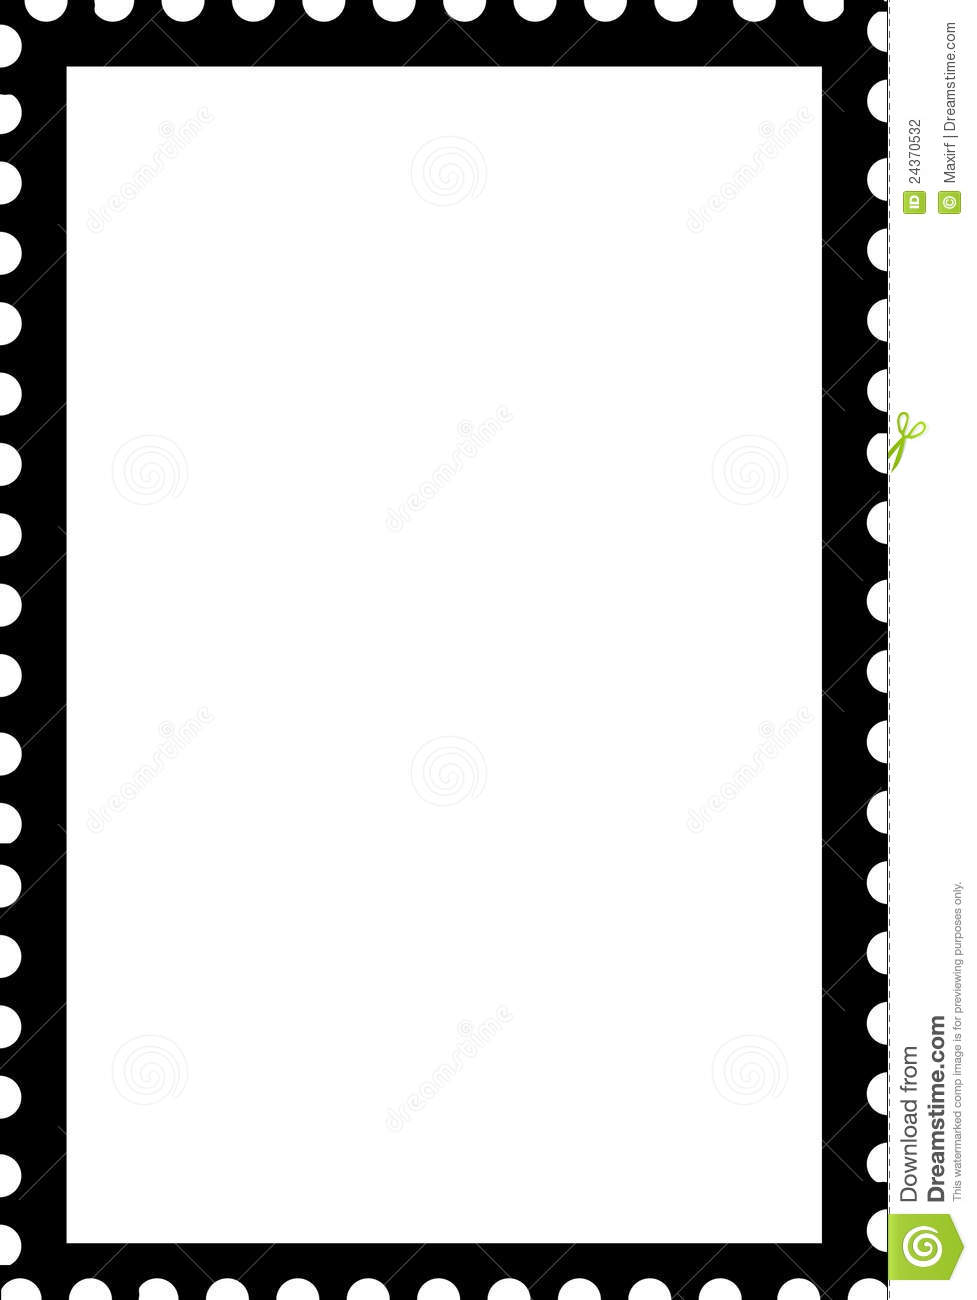 Squares clipart blank stamp Stamp Panda Clipart Free Images